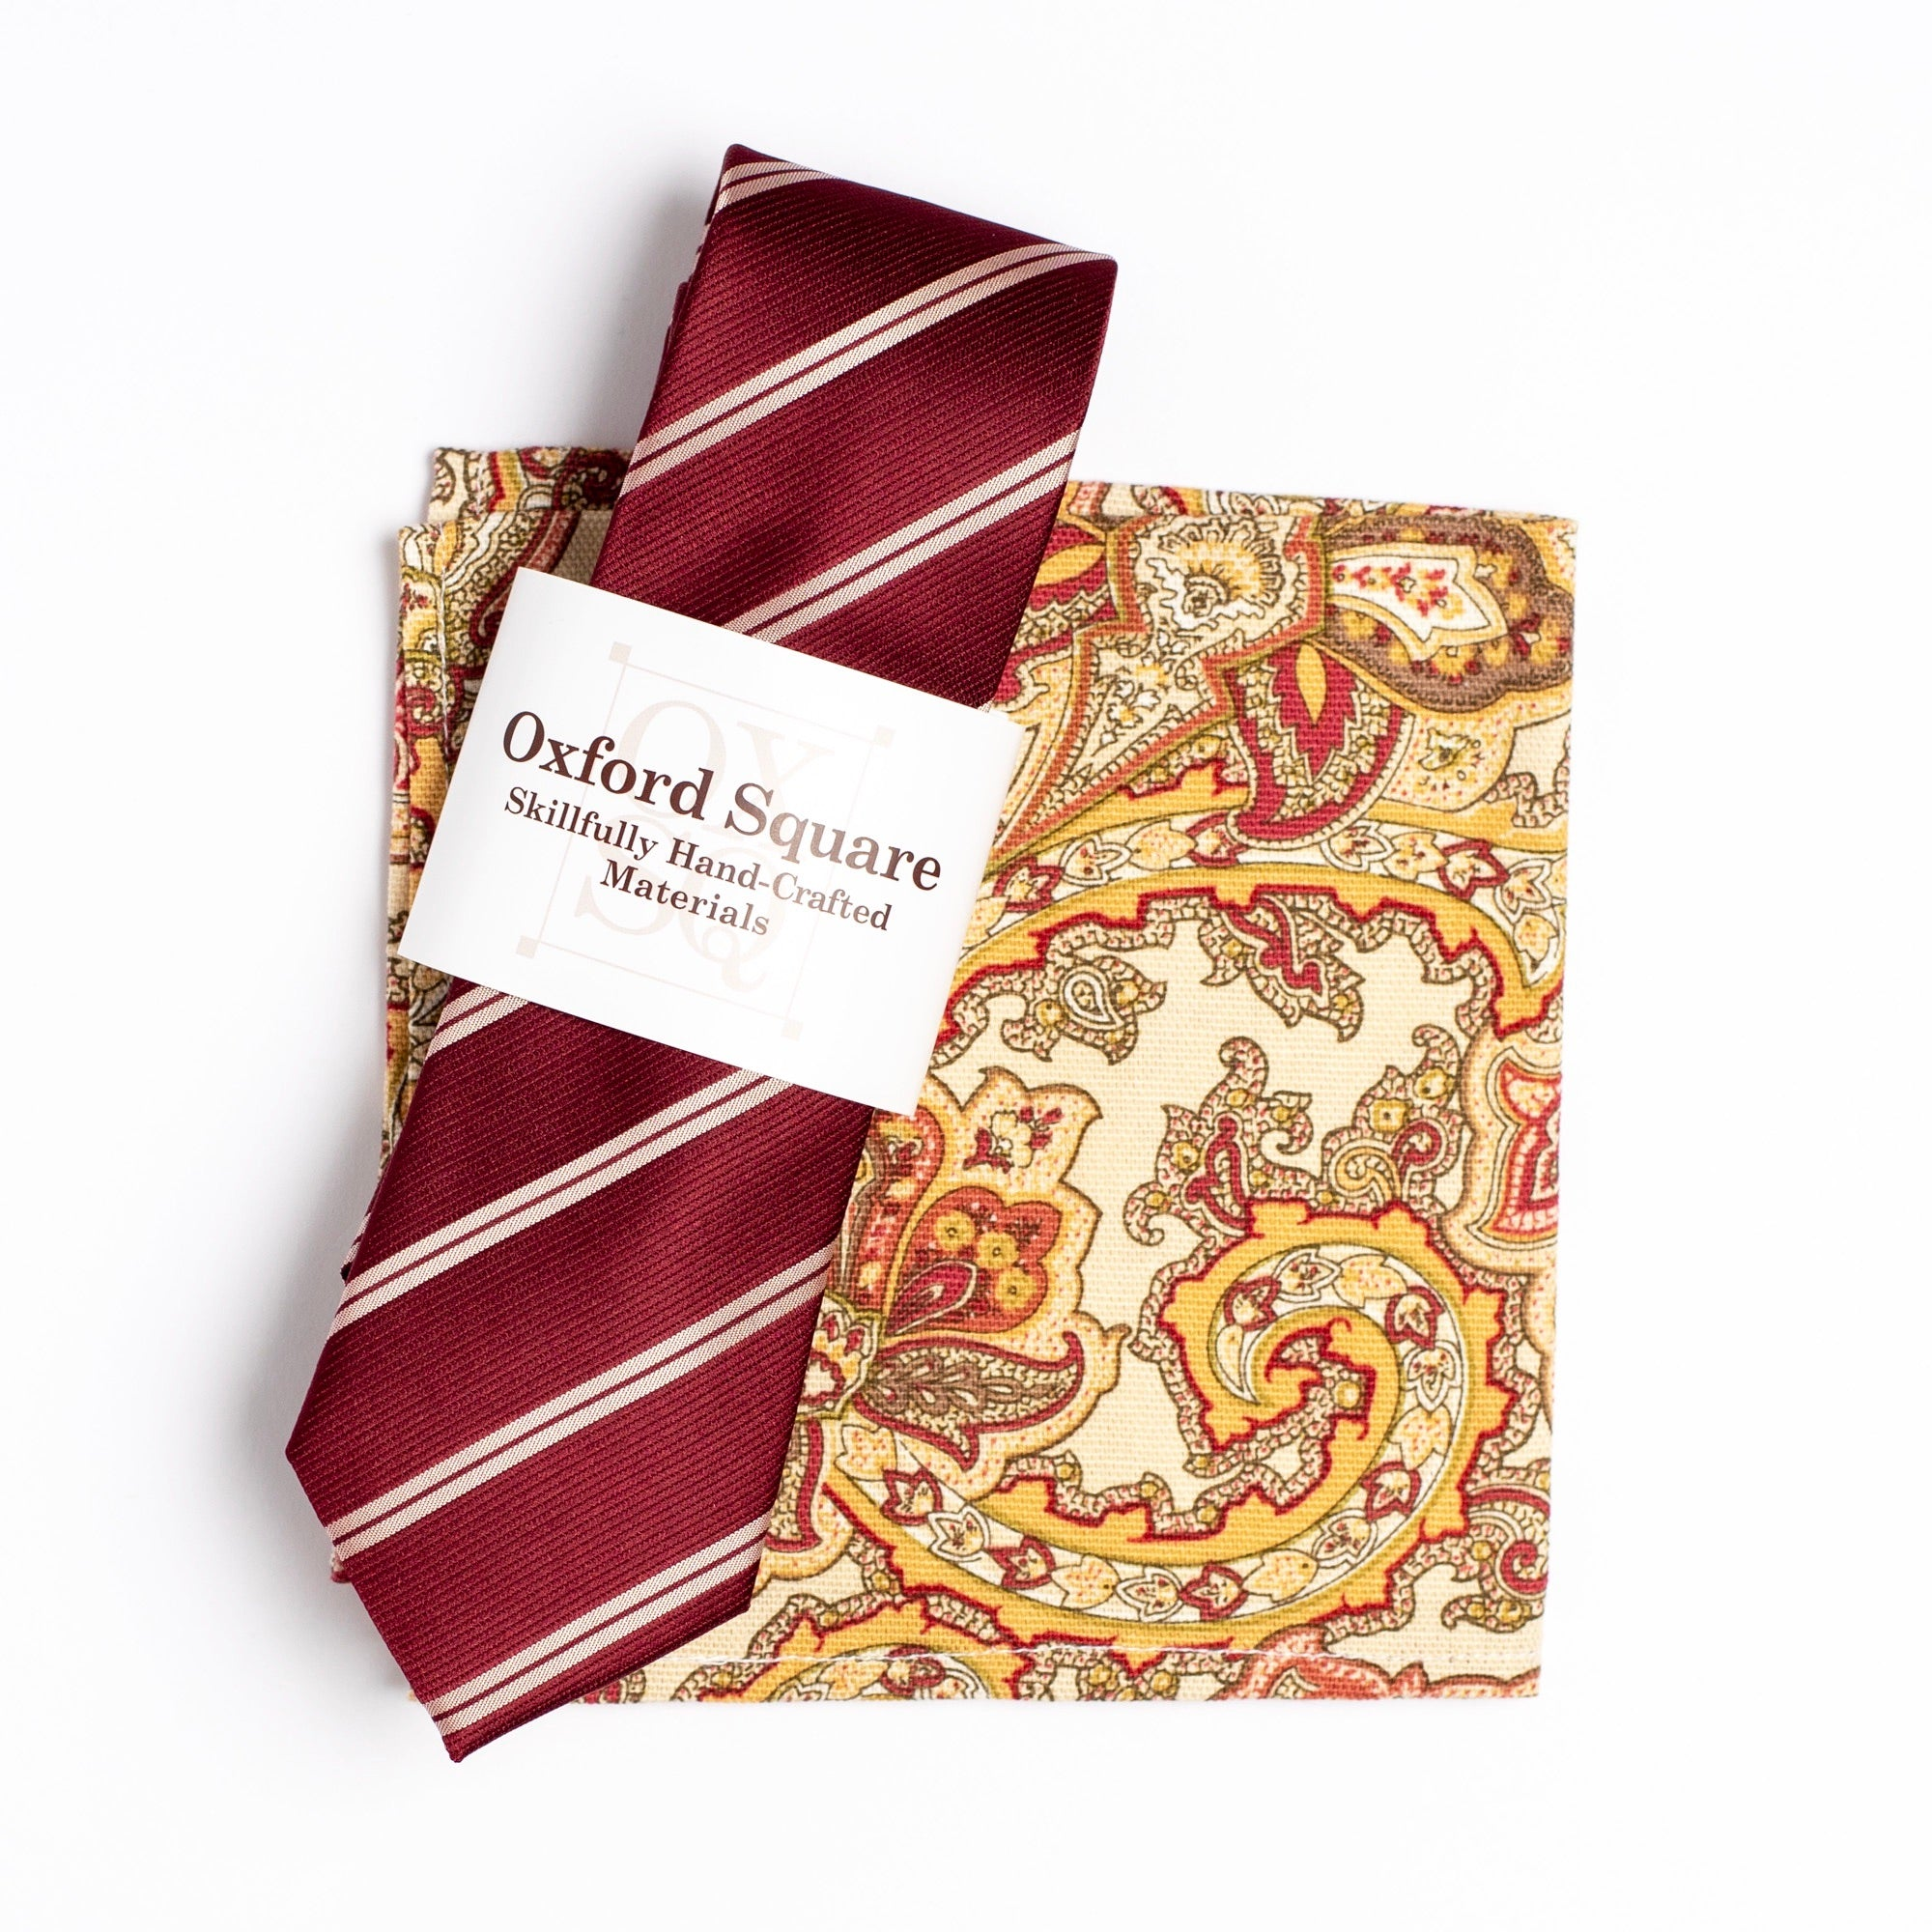 tan and red paisley pattern pocket square and red and white striped tie pack - Oxford Square